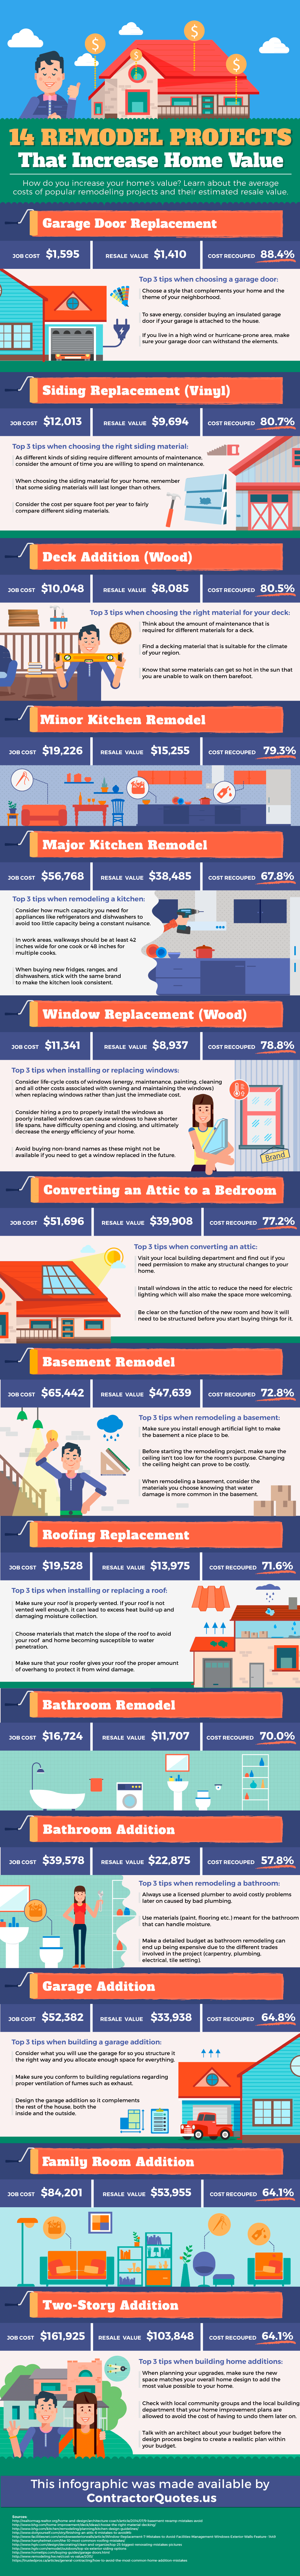 50 Best Remodeling & Home Improvement Ideas to Increase Value